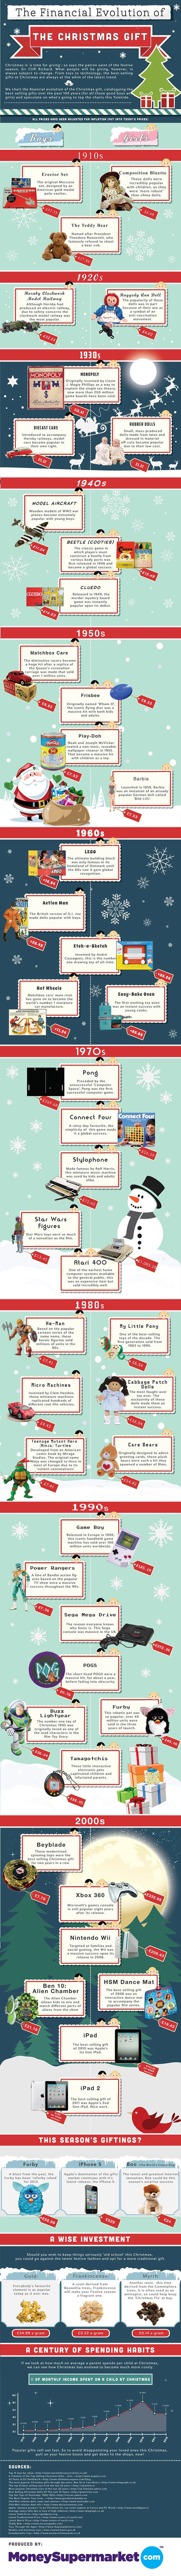 The Evolution Of Christmas Gifts | Educational Apps & Tools | Scoop.it